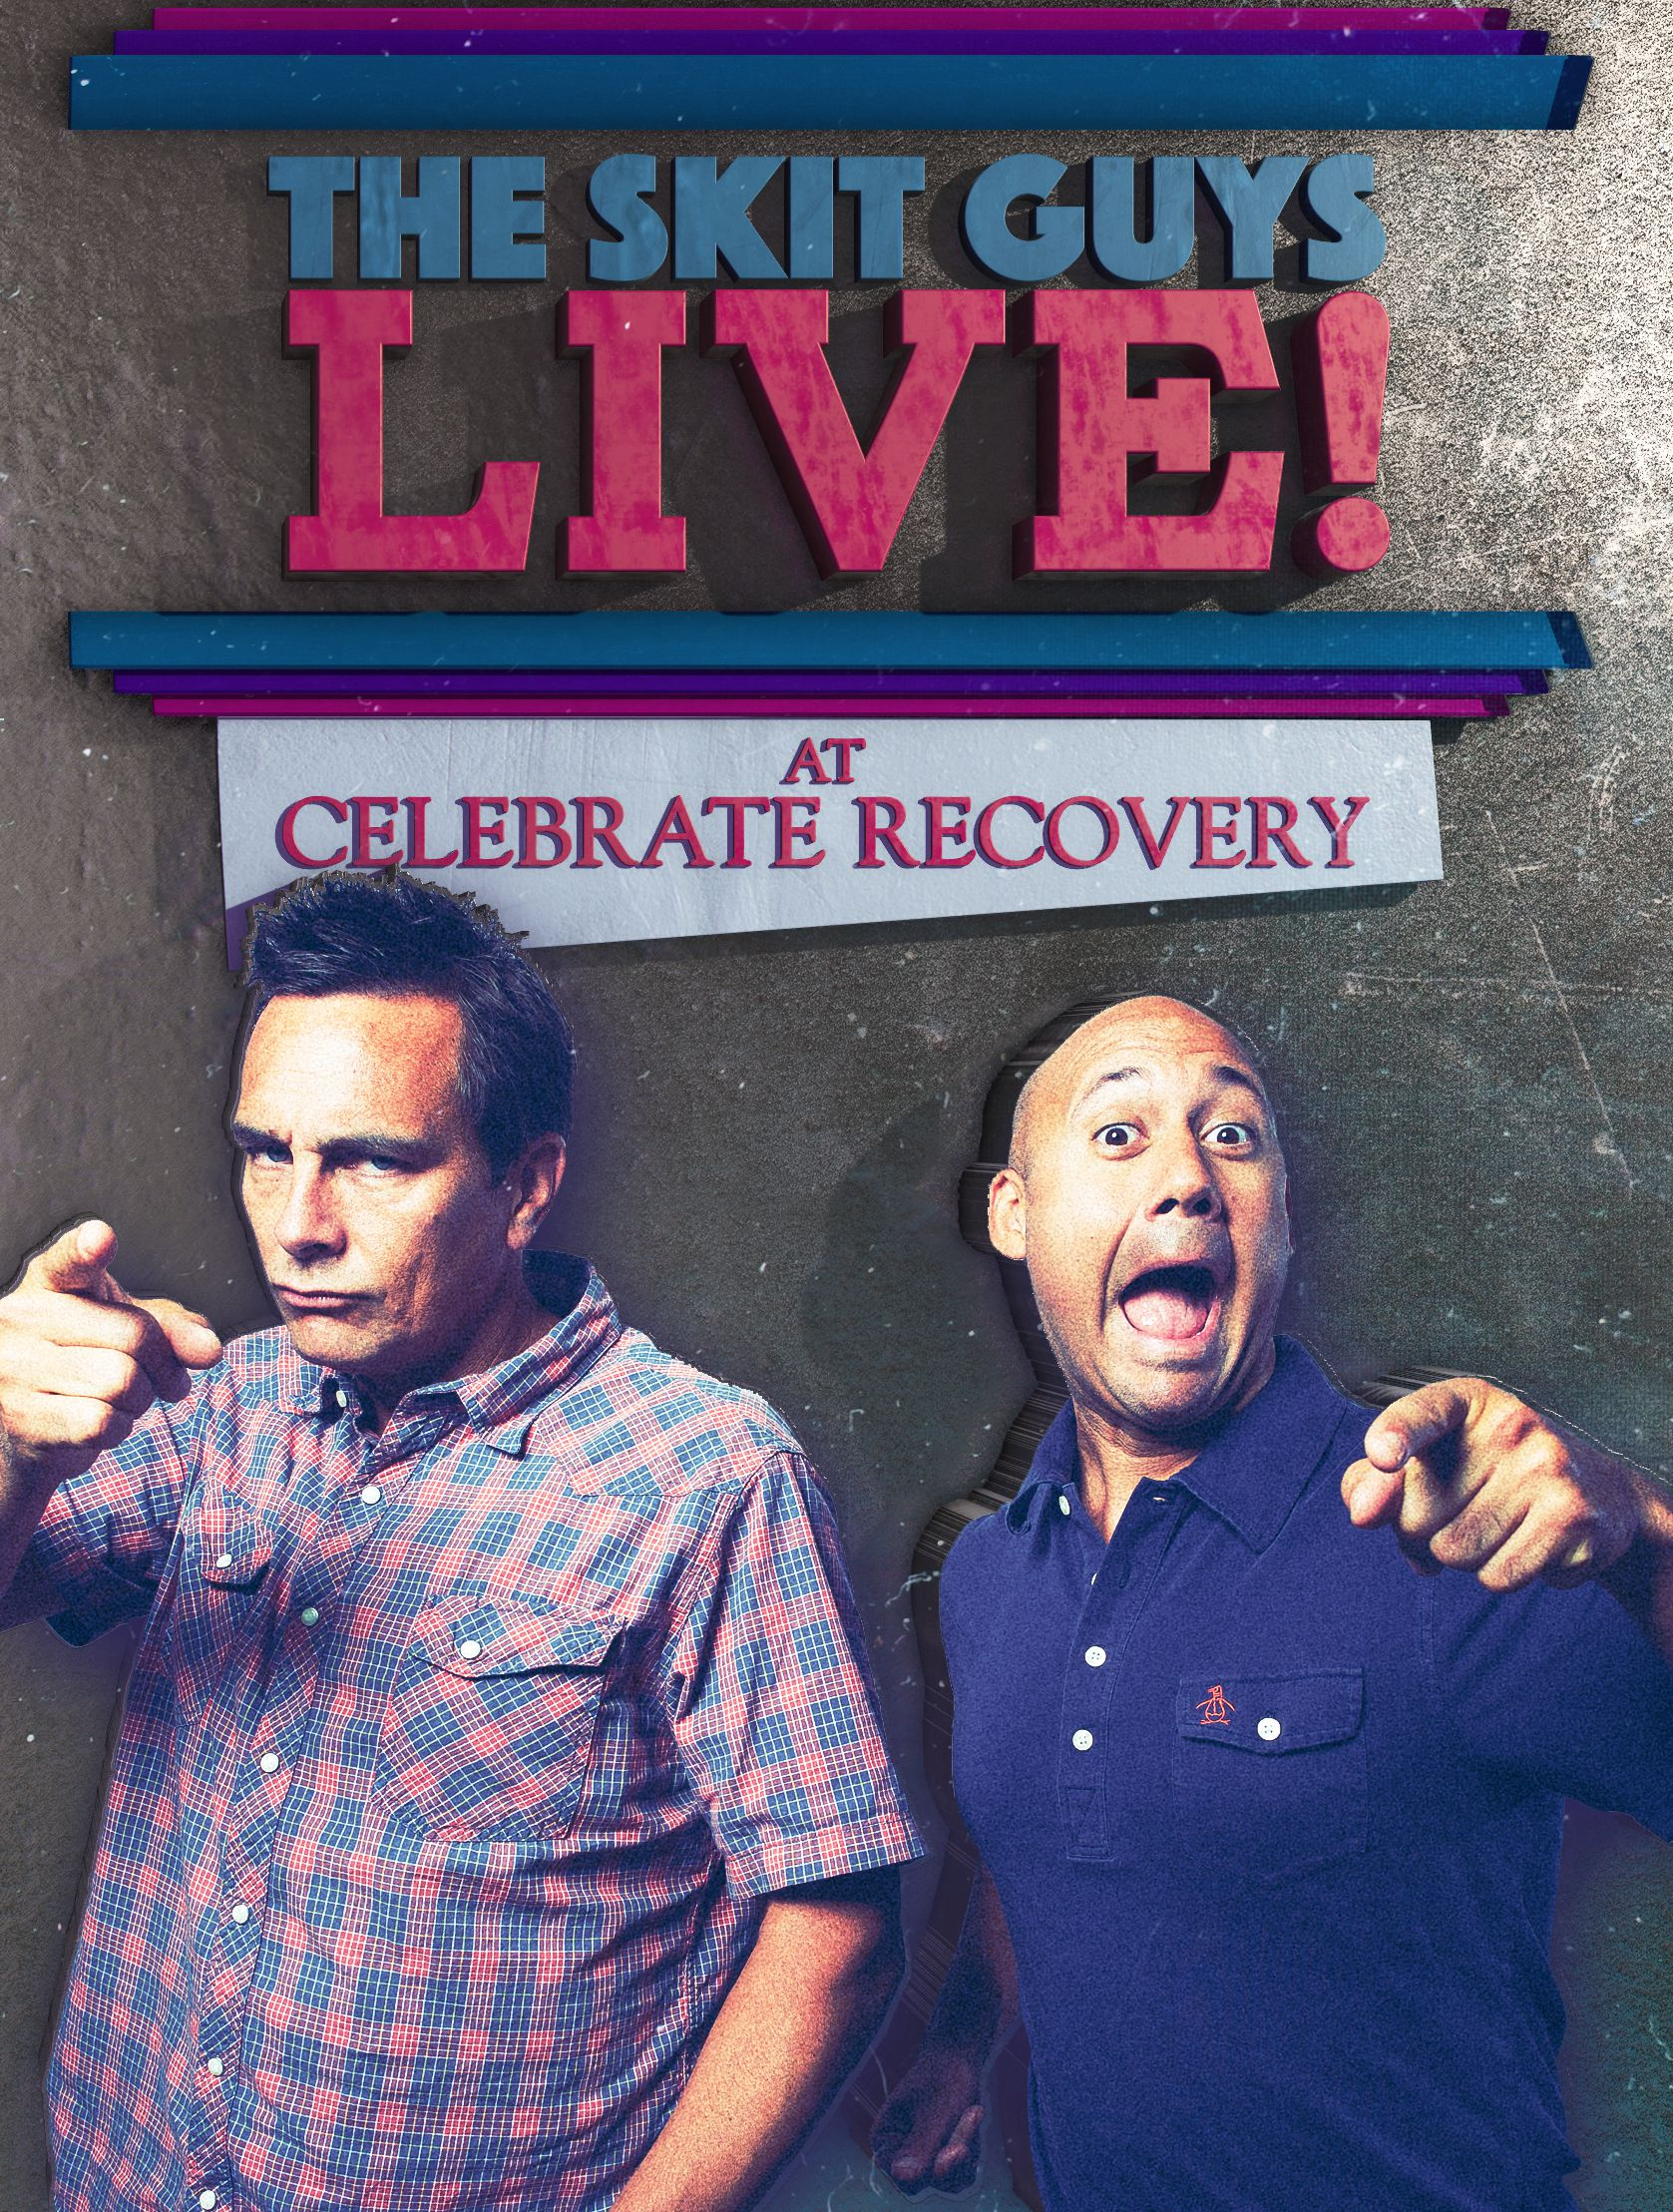 The Skit Guys Live! At Celebrate Recovery DVD Image